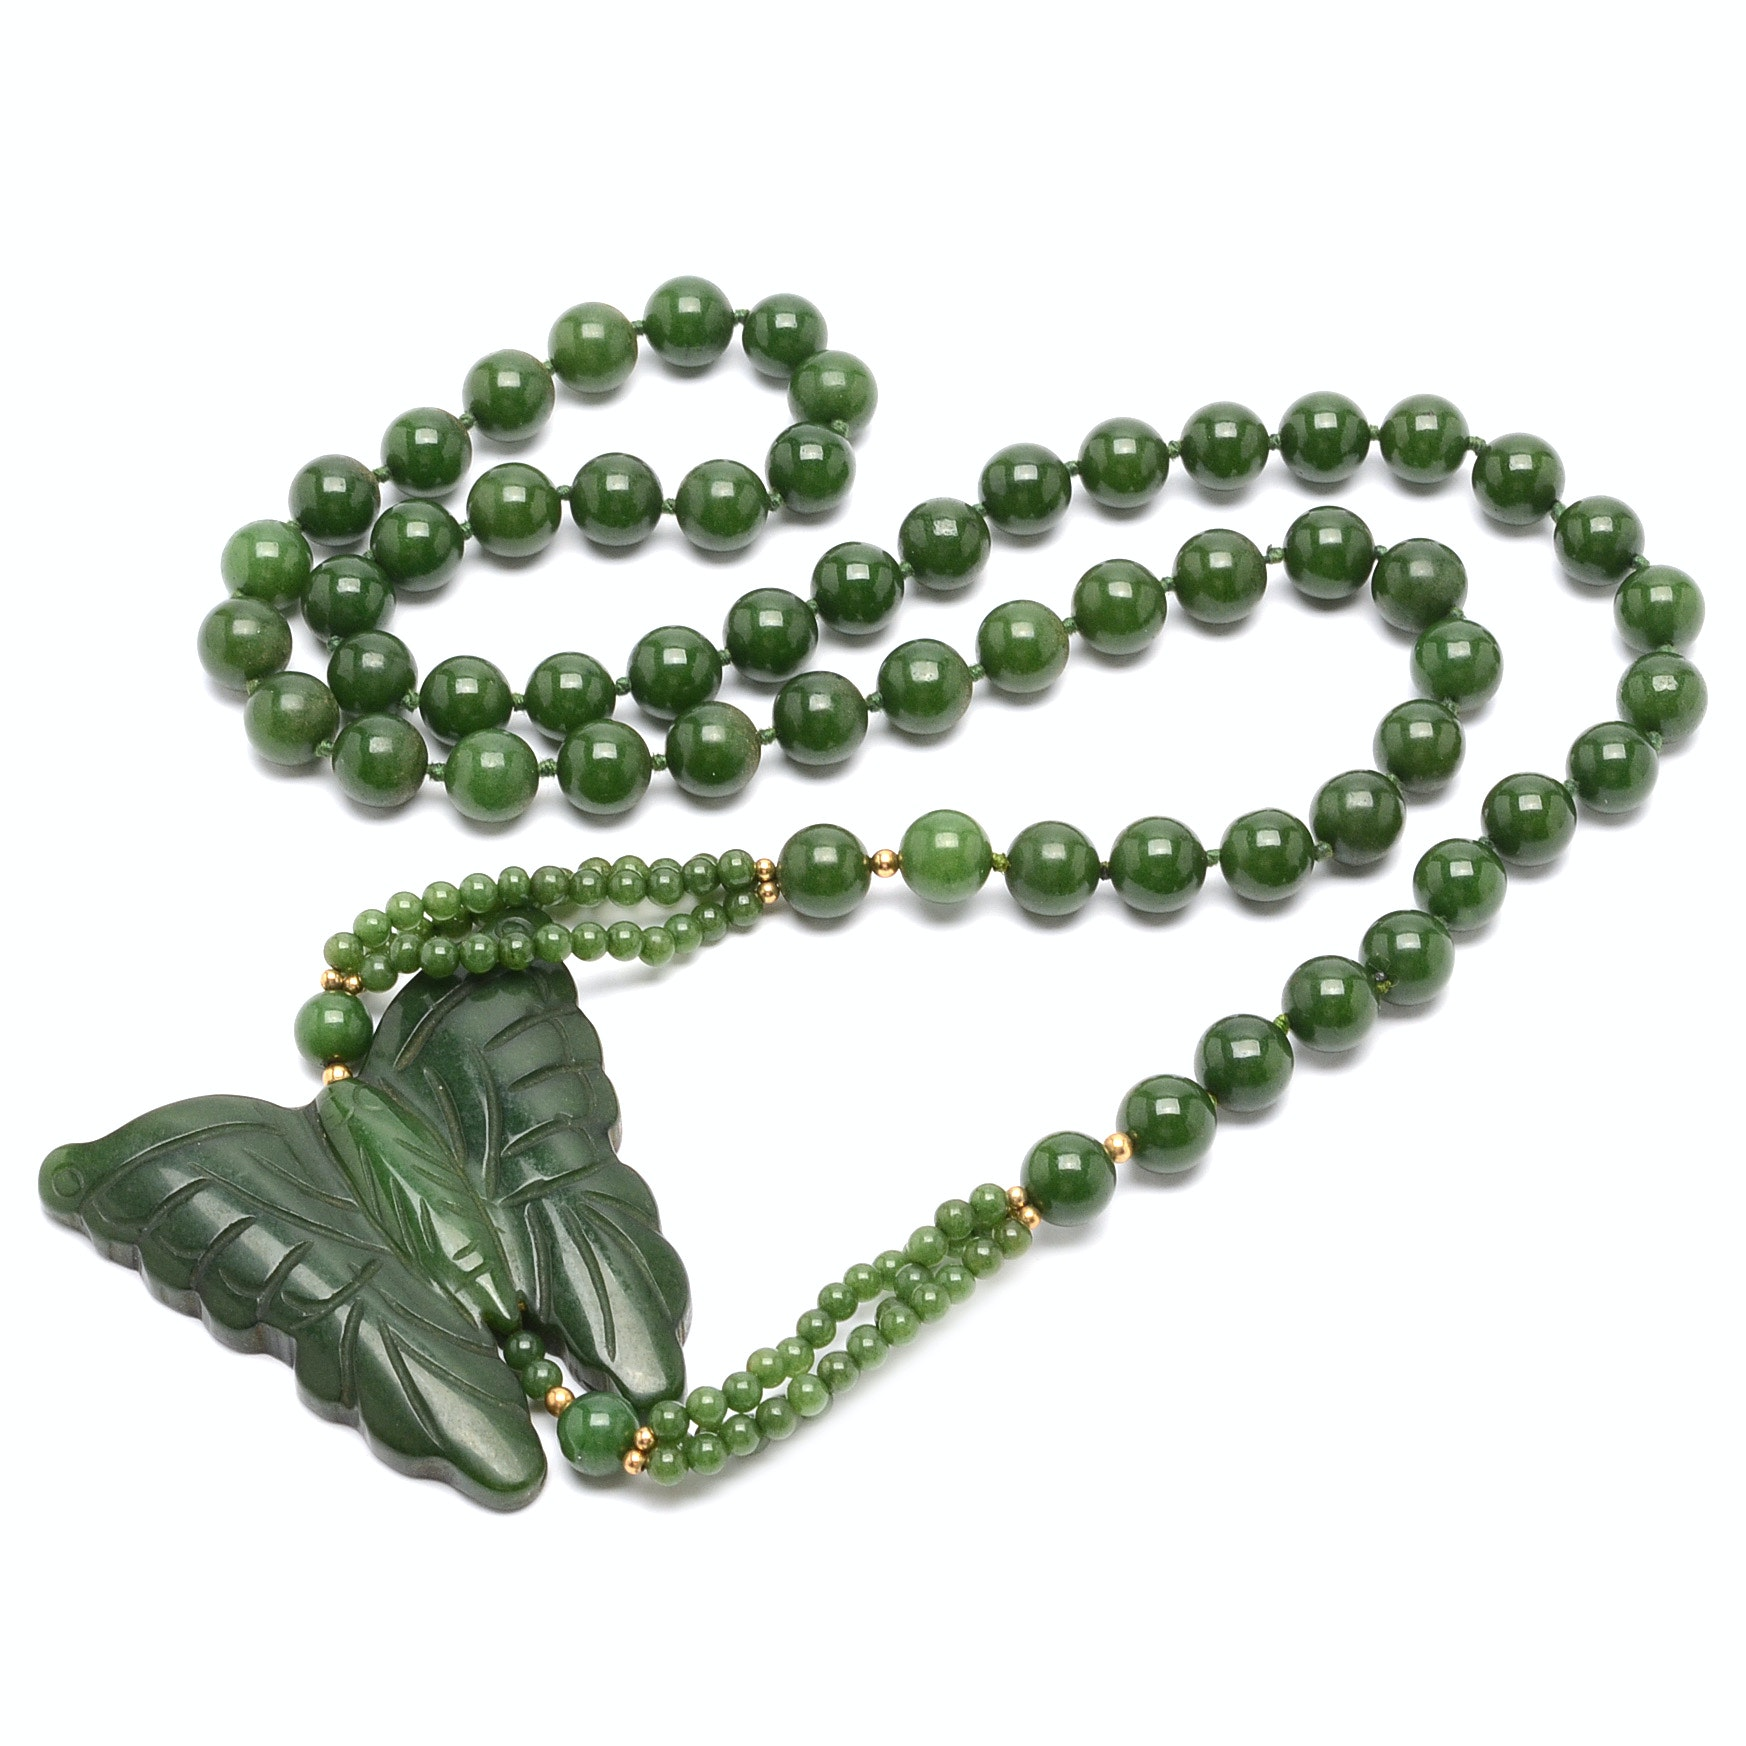 Beaded Nephrite Necklace Showcasing a Carved Butterfly Pendant